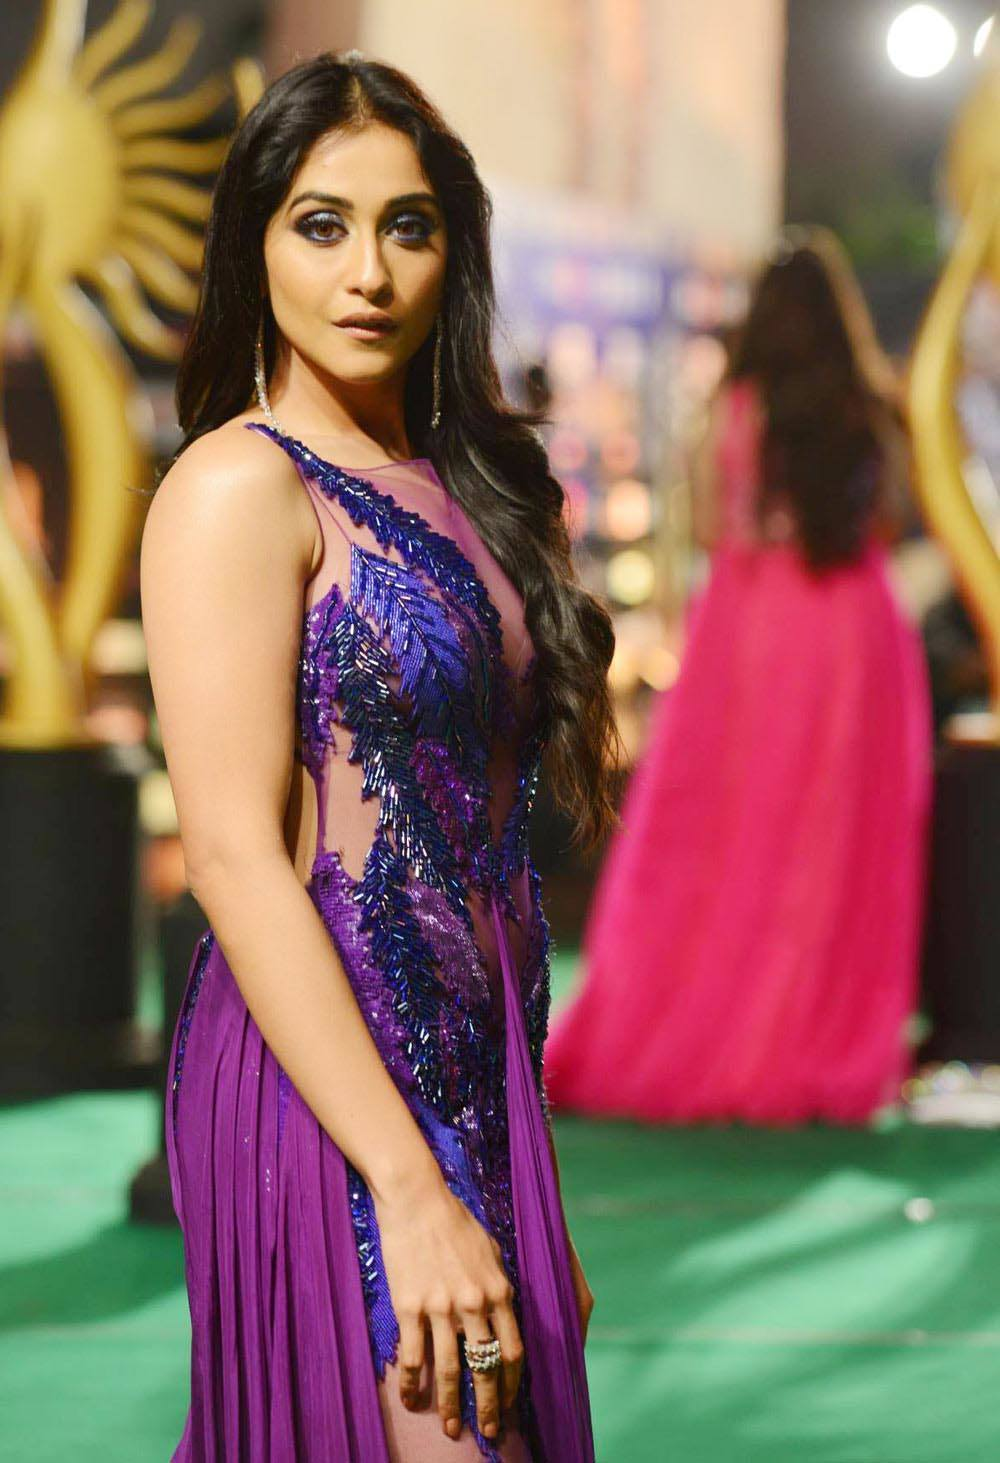 regina cassandra ragalahariregina cassandra photos, regina cassandra movies, regina cassandra, regina cassandra wiki, regina cassandra facebook, regina cassandra wallpapers, regina cassandra instagram, regina cassandra movie list, regina cassandra latest photos, regina cassandra navel, regina cassandra height, regina cassandra kiss, regina cassandra hot pics, regina cassandra biography, regina cassandra ragalahari, regina cassandra hd wallpapers, regina cassandra iifa, regina cassandra photos hd, regina cassandra twitter